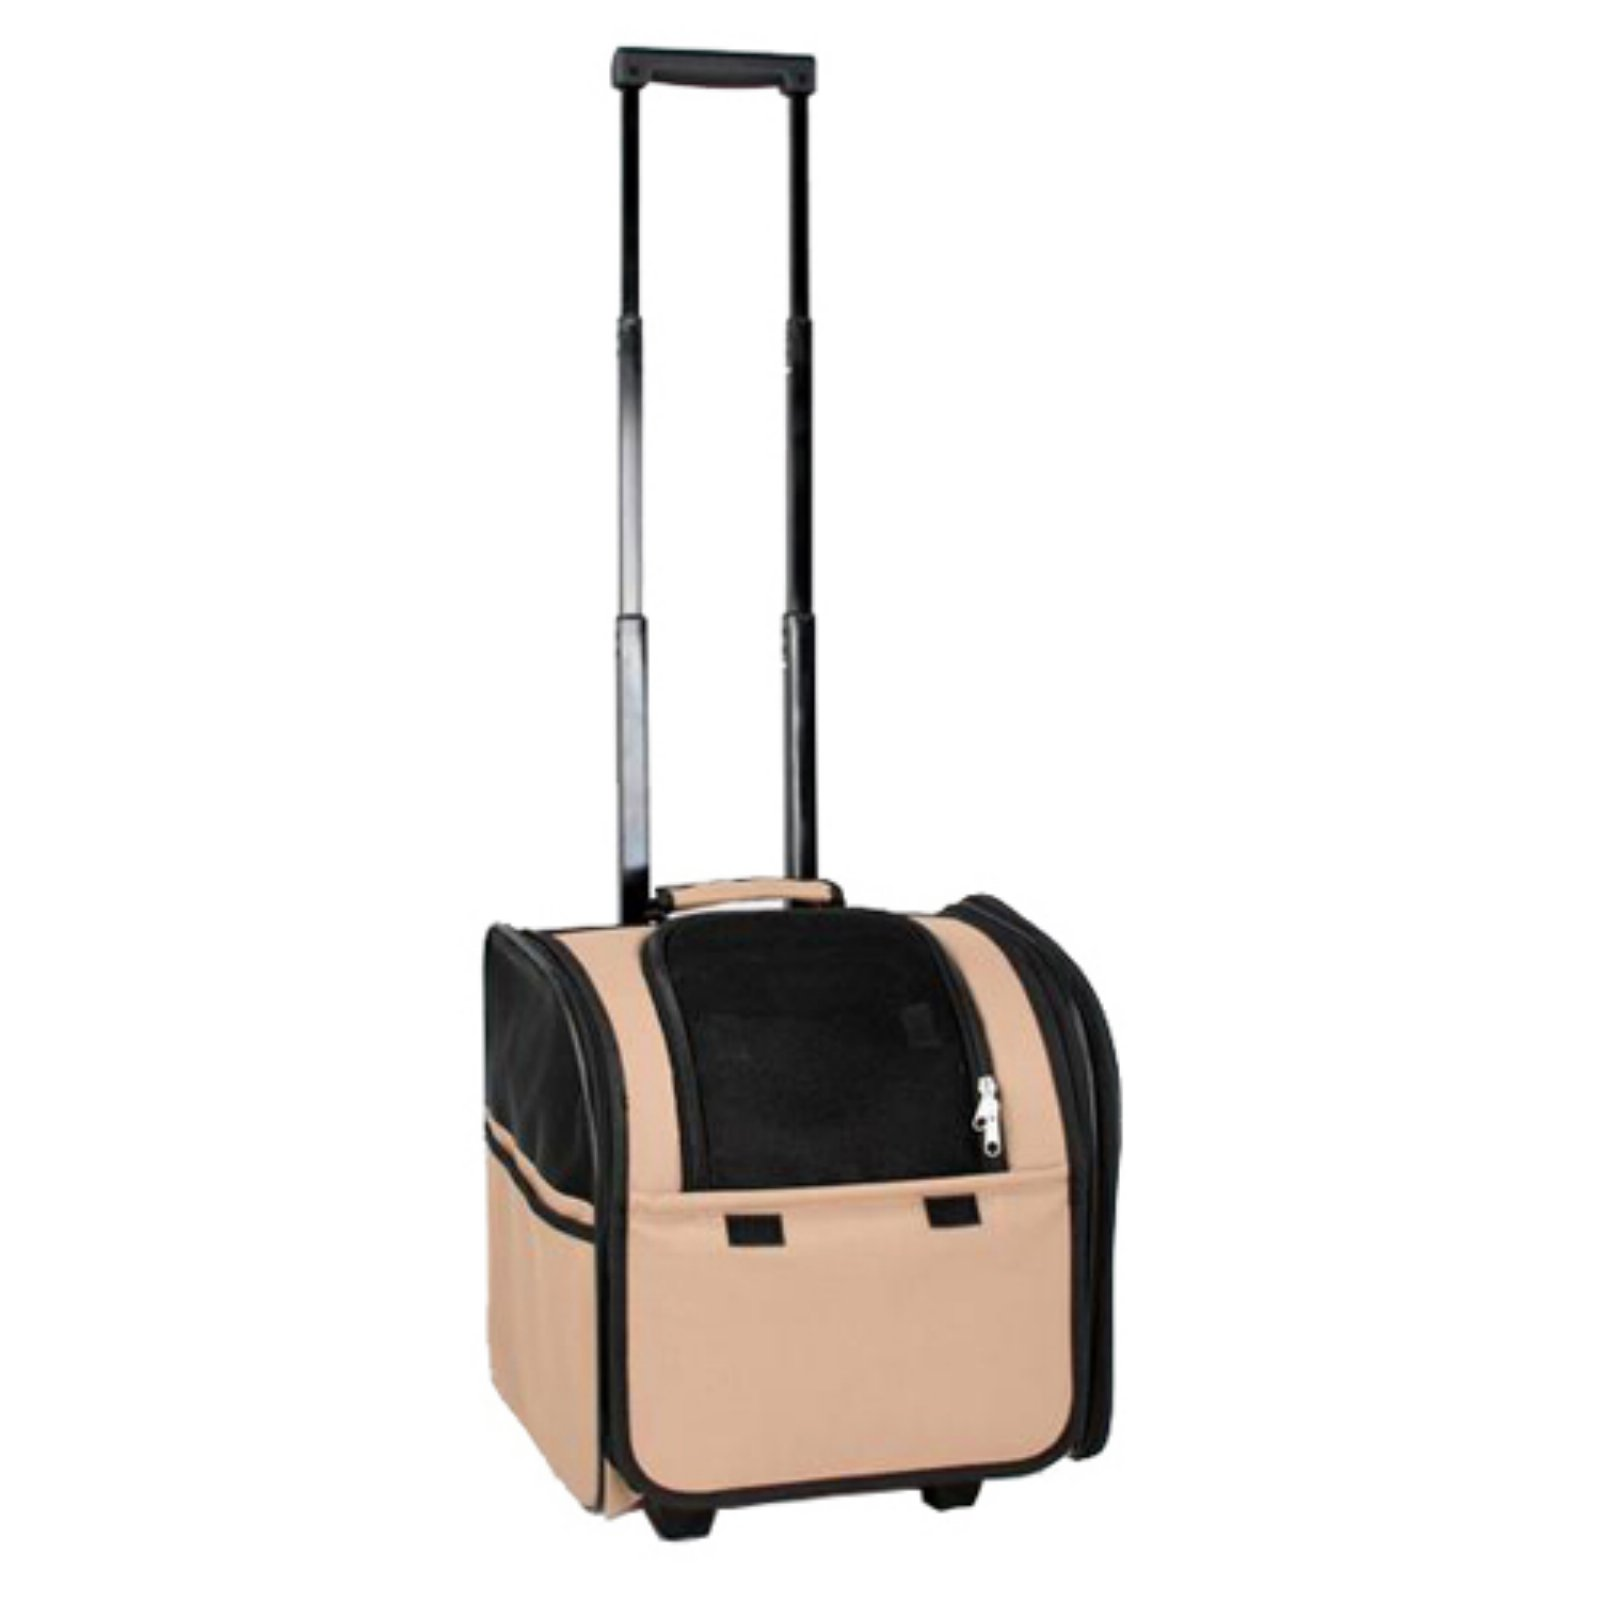 Petlife Wheeled Airline Approved Travel Pet Carrier